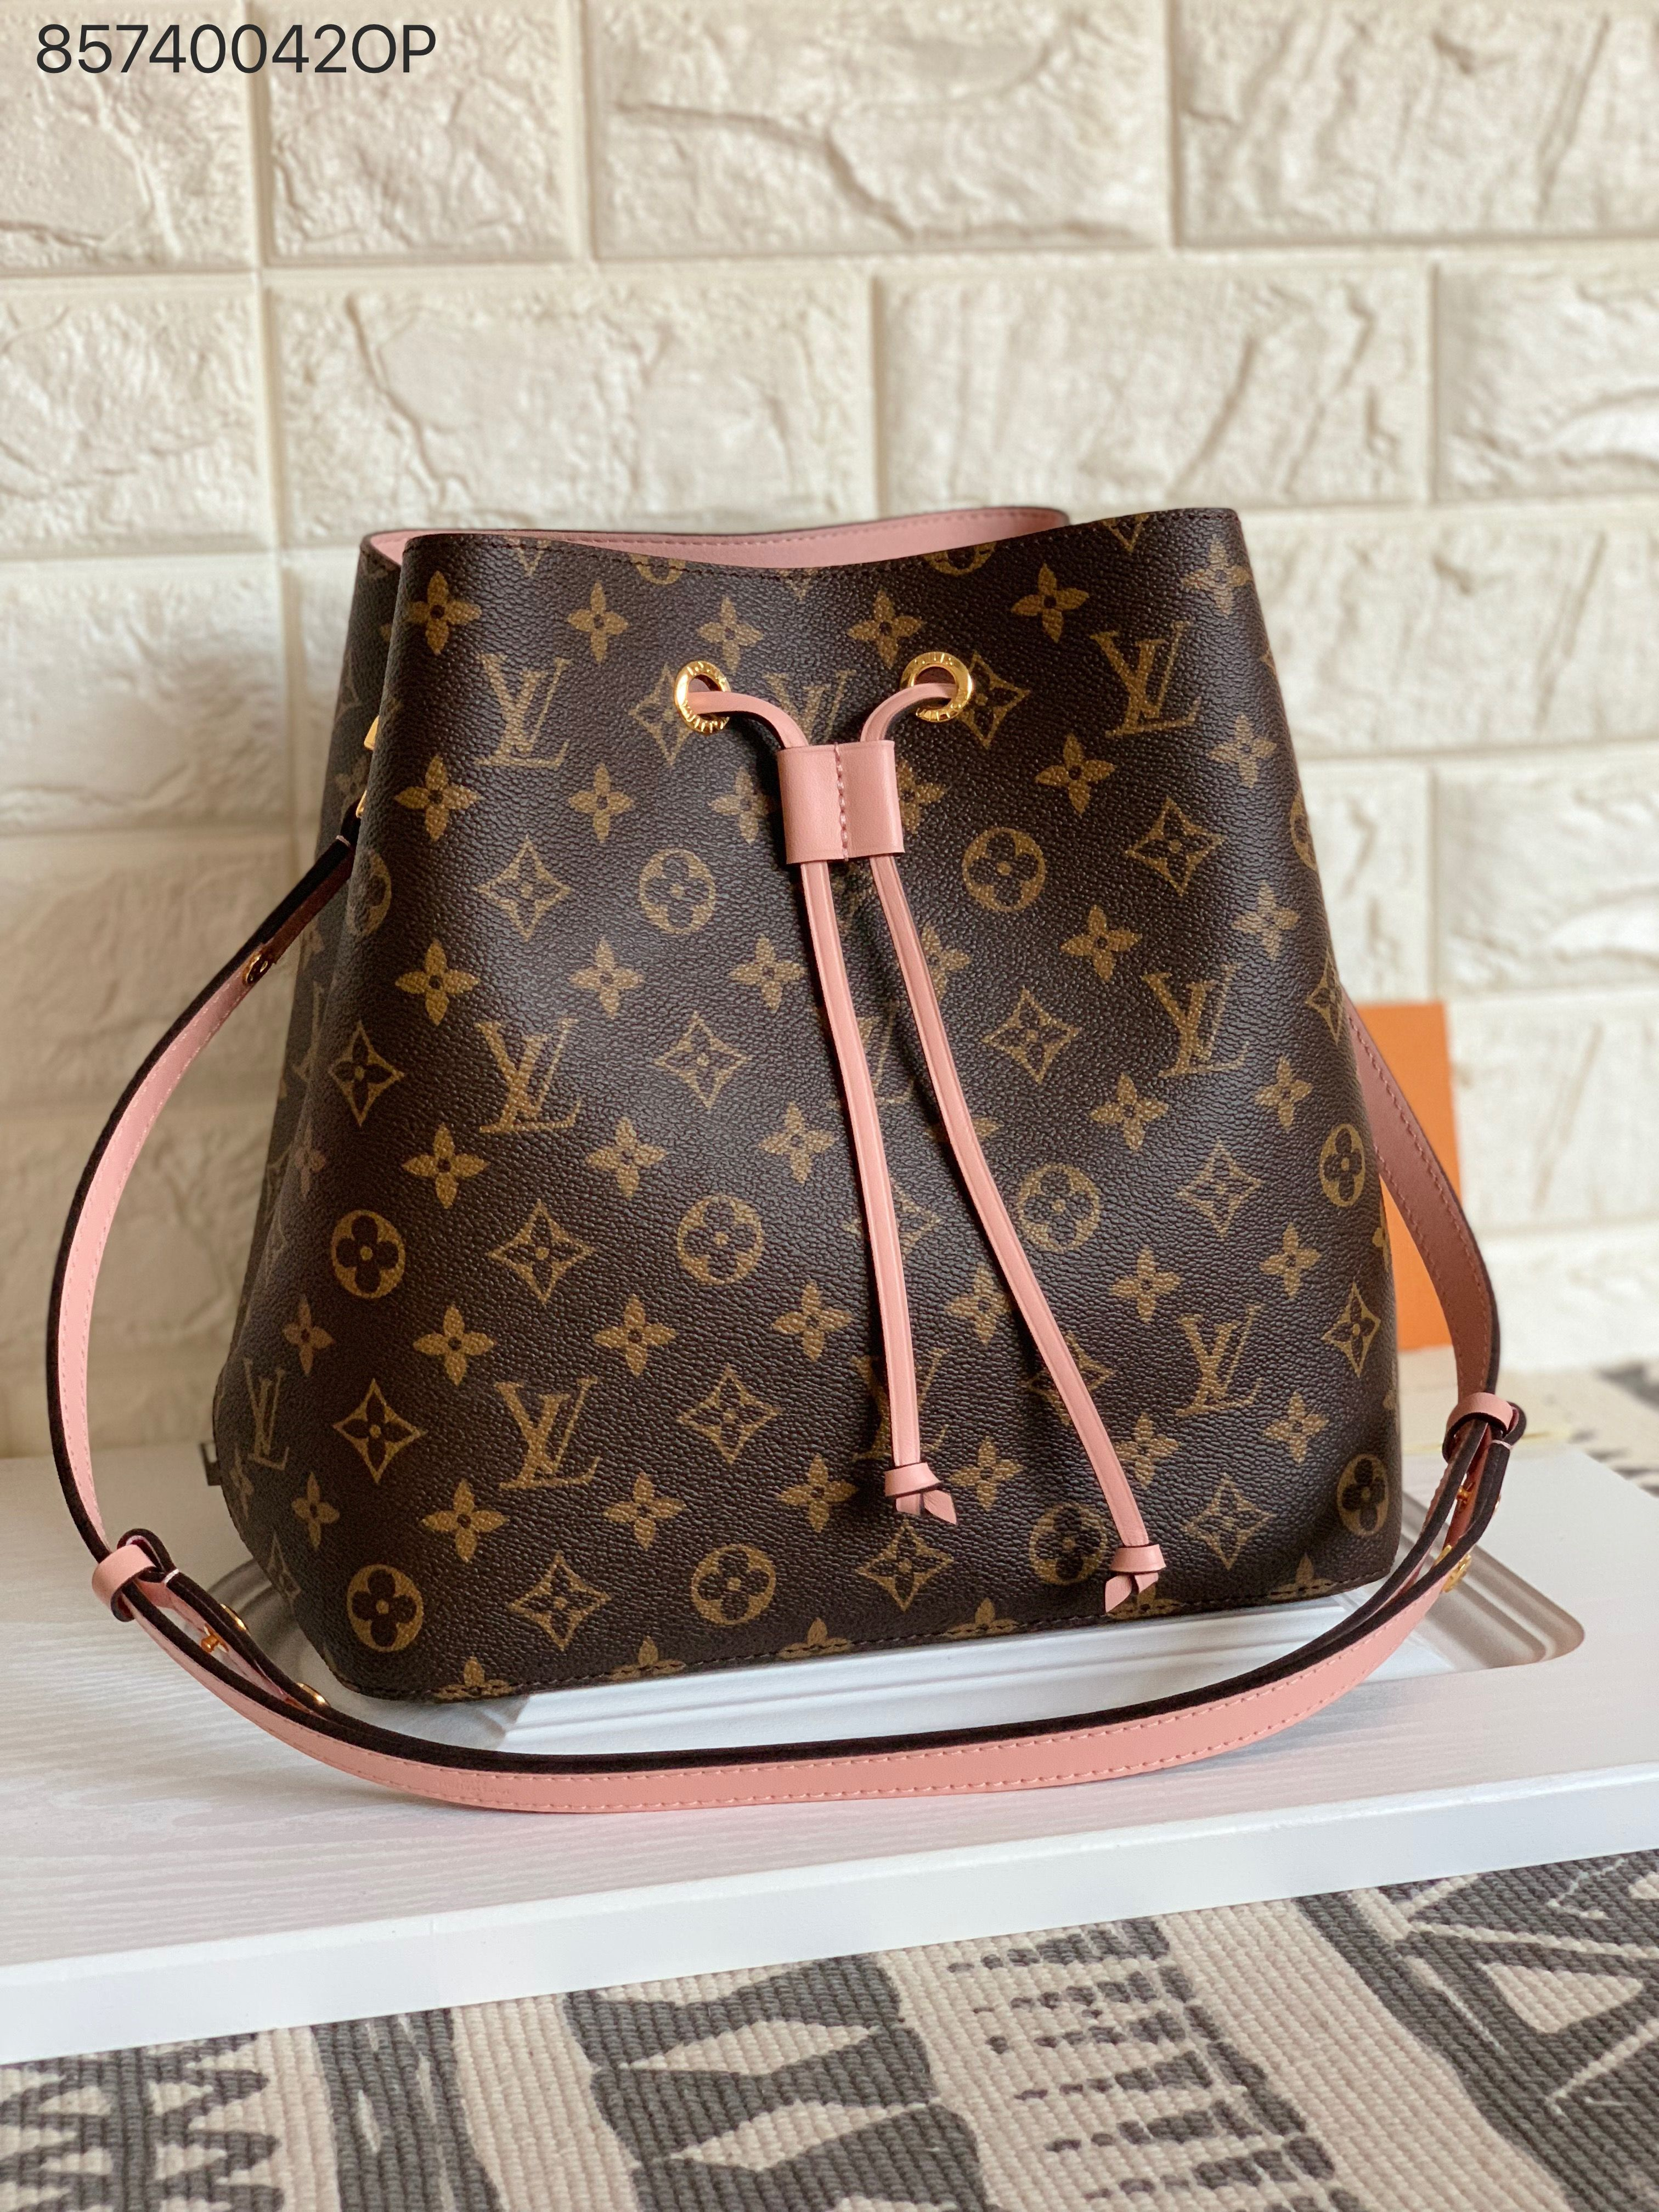 b04bb65bc075 Louis Vuitton lv neonoe bucket bag monogram with pink strap shoulder bags